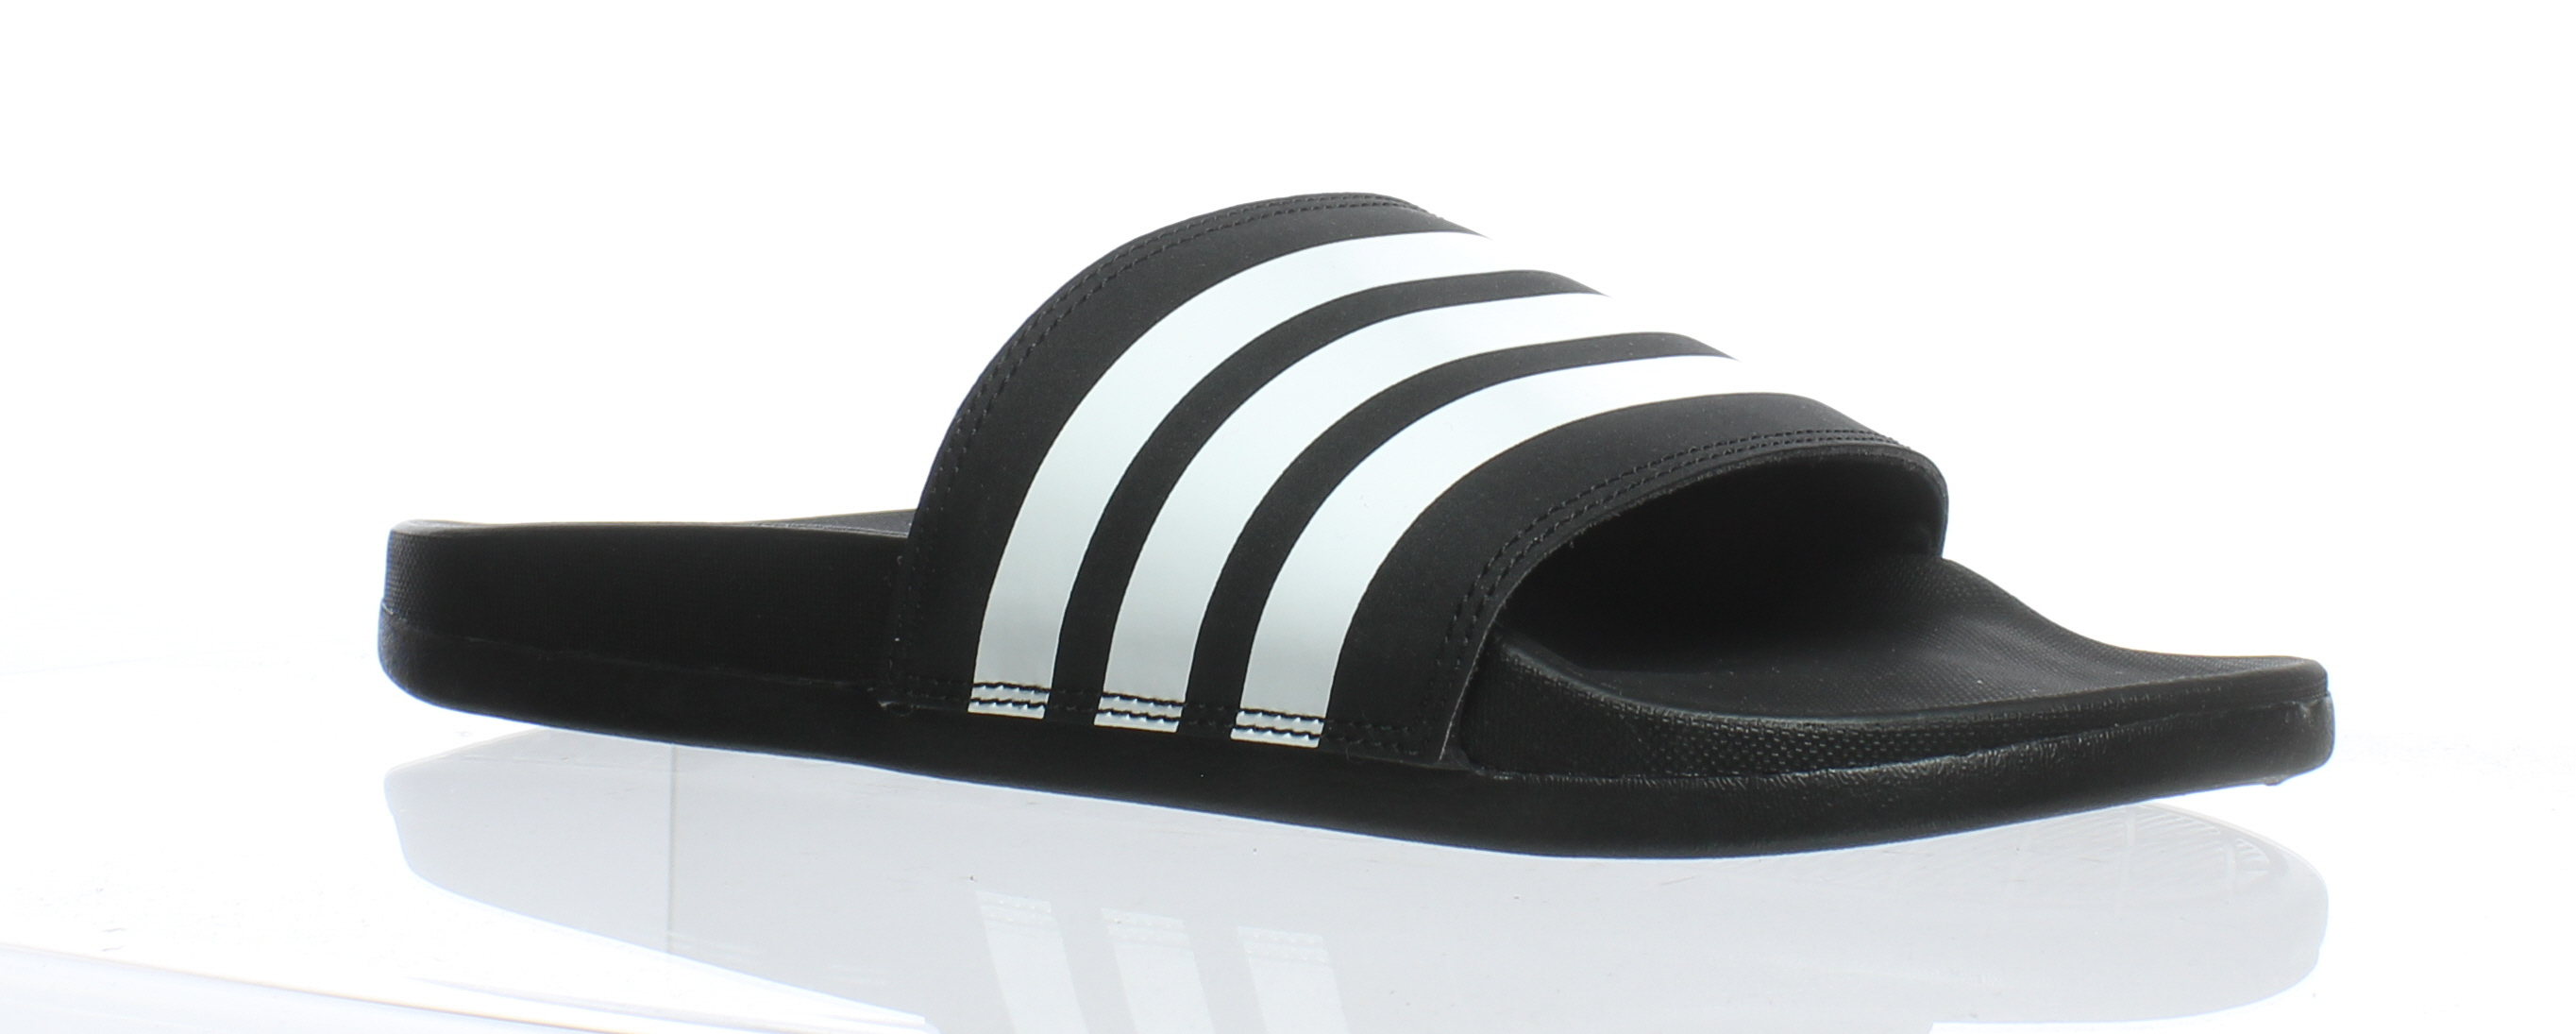 3fb3330cd6bfe Details about Adidas Womens Adilette Comfort Black Slides Size 8 (185440)